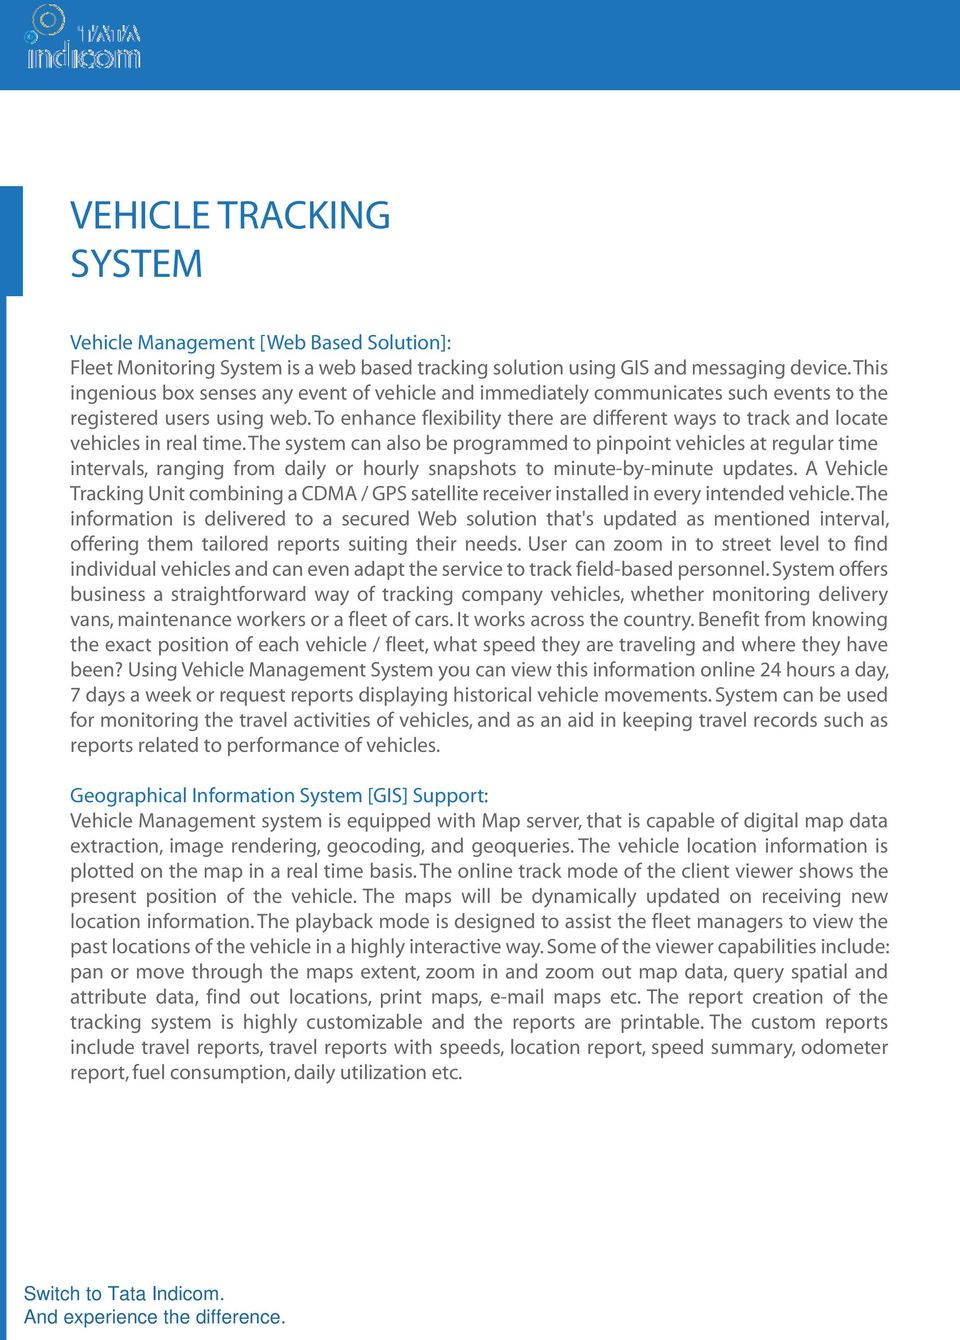 To enhance flexibility there are different ways to track and locate vehicles in real time.